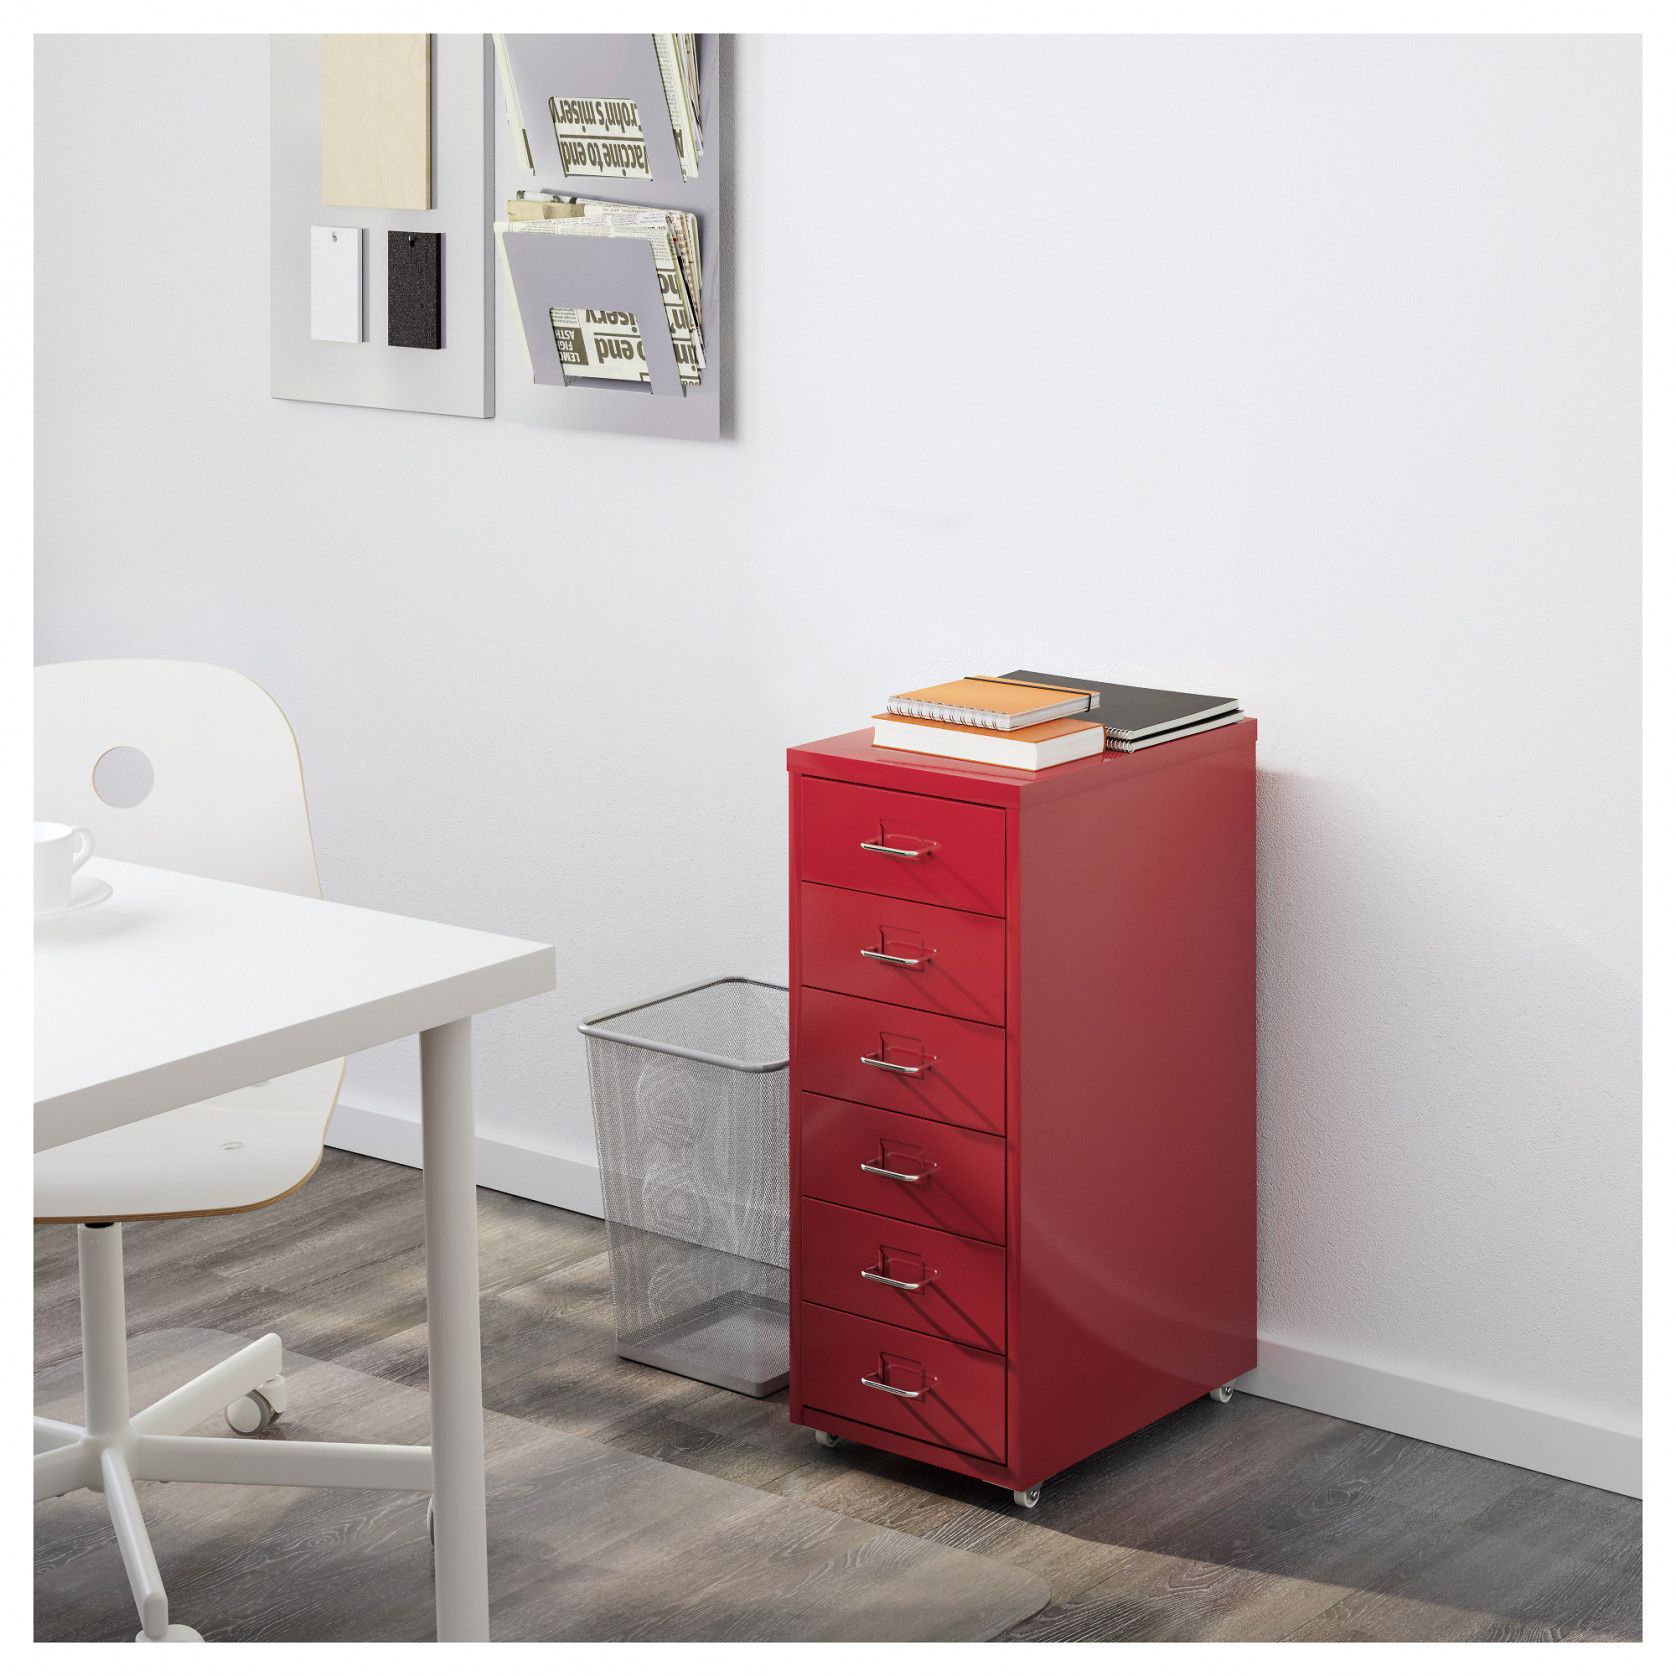 20 Red Filing Cabinet Ikea Apartment Kitchen Cabinet Ideas Check